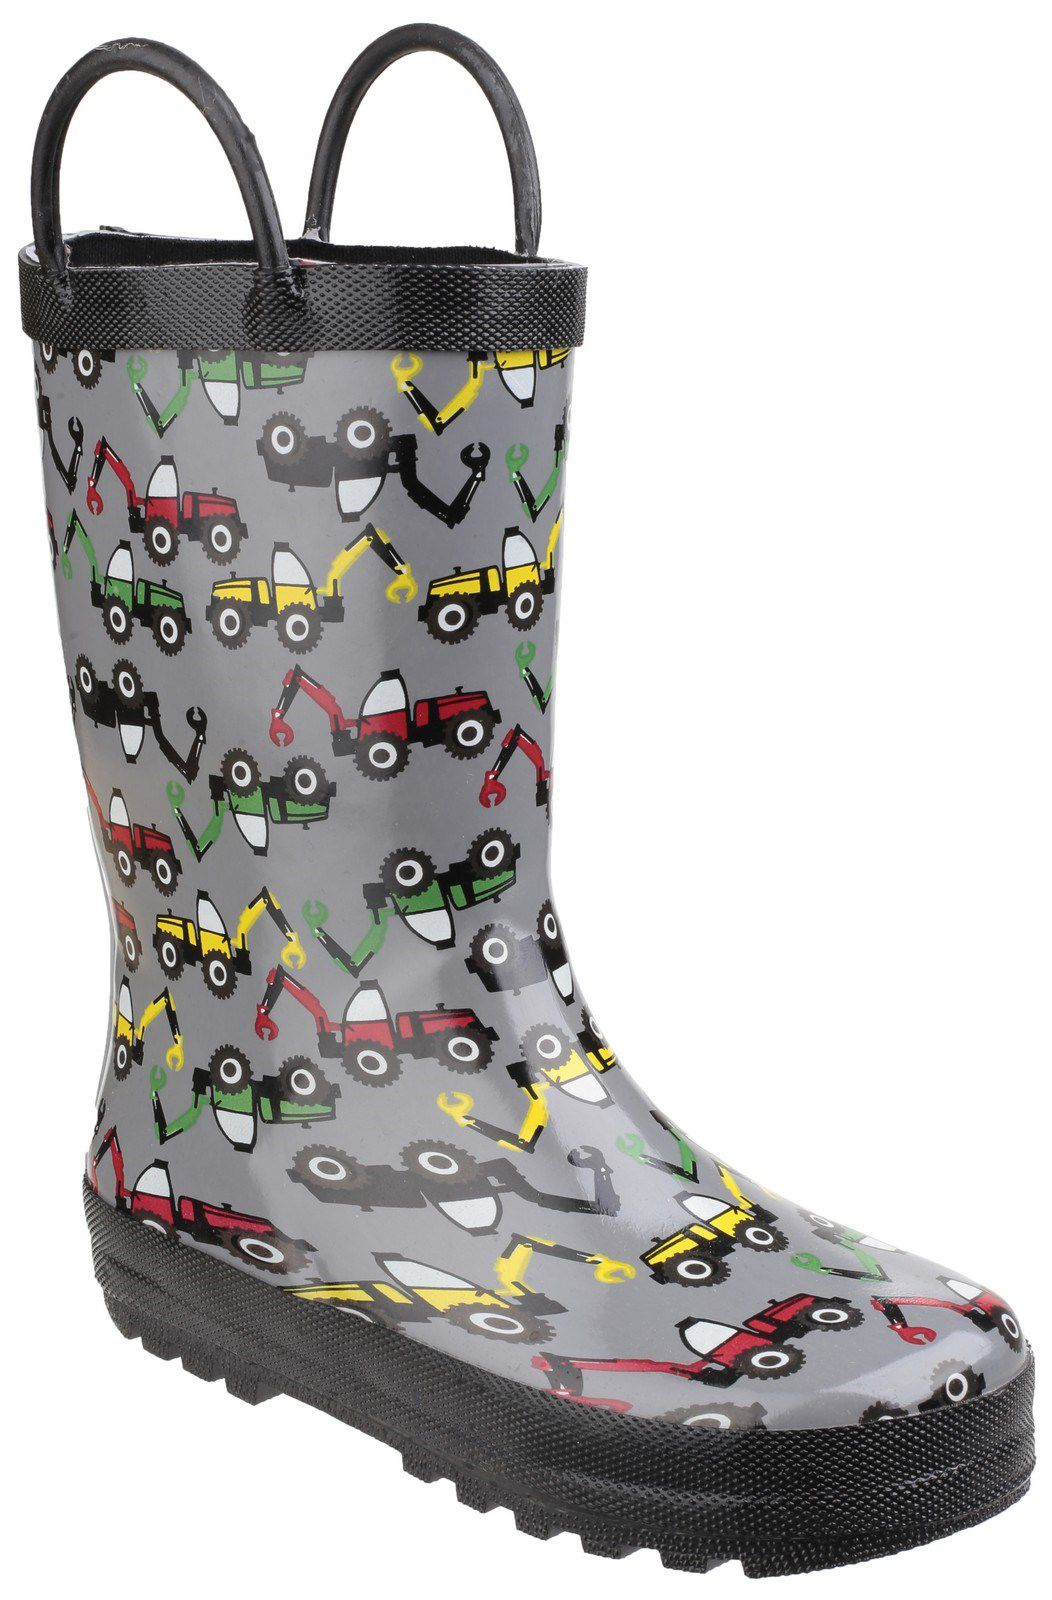 Cotswold Cotswold Kids Puddle Boot Wellies, Grey